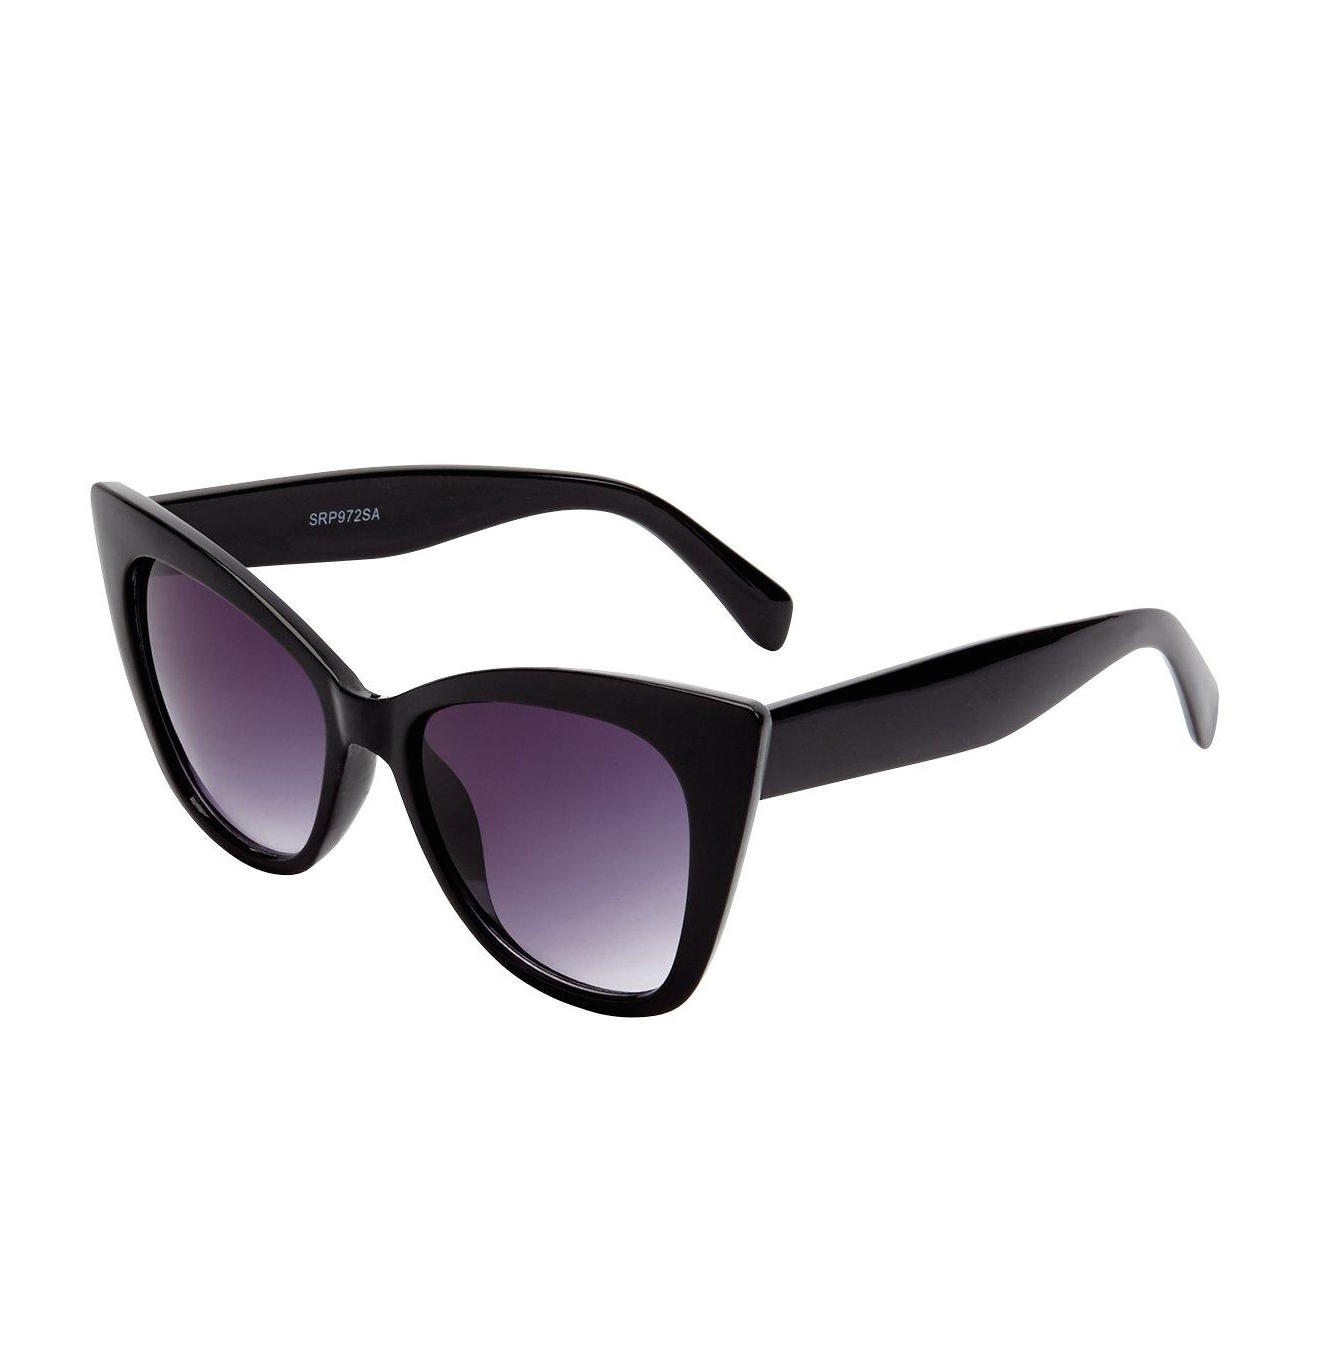 V by Very sunnies, €12 Shop here